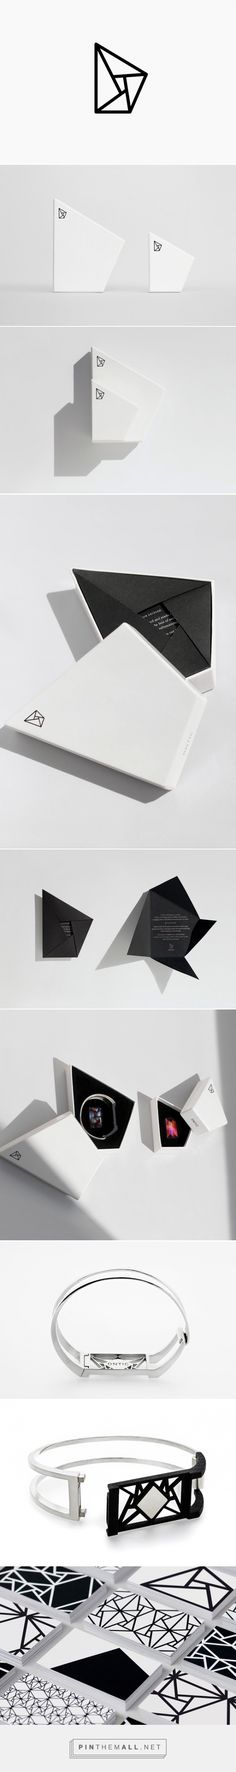 Ontic Jewelry packaging designed by Cindy Forster - http://www.packagingoftheworld.com/2015/09/ontic.html